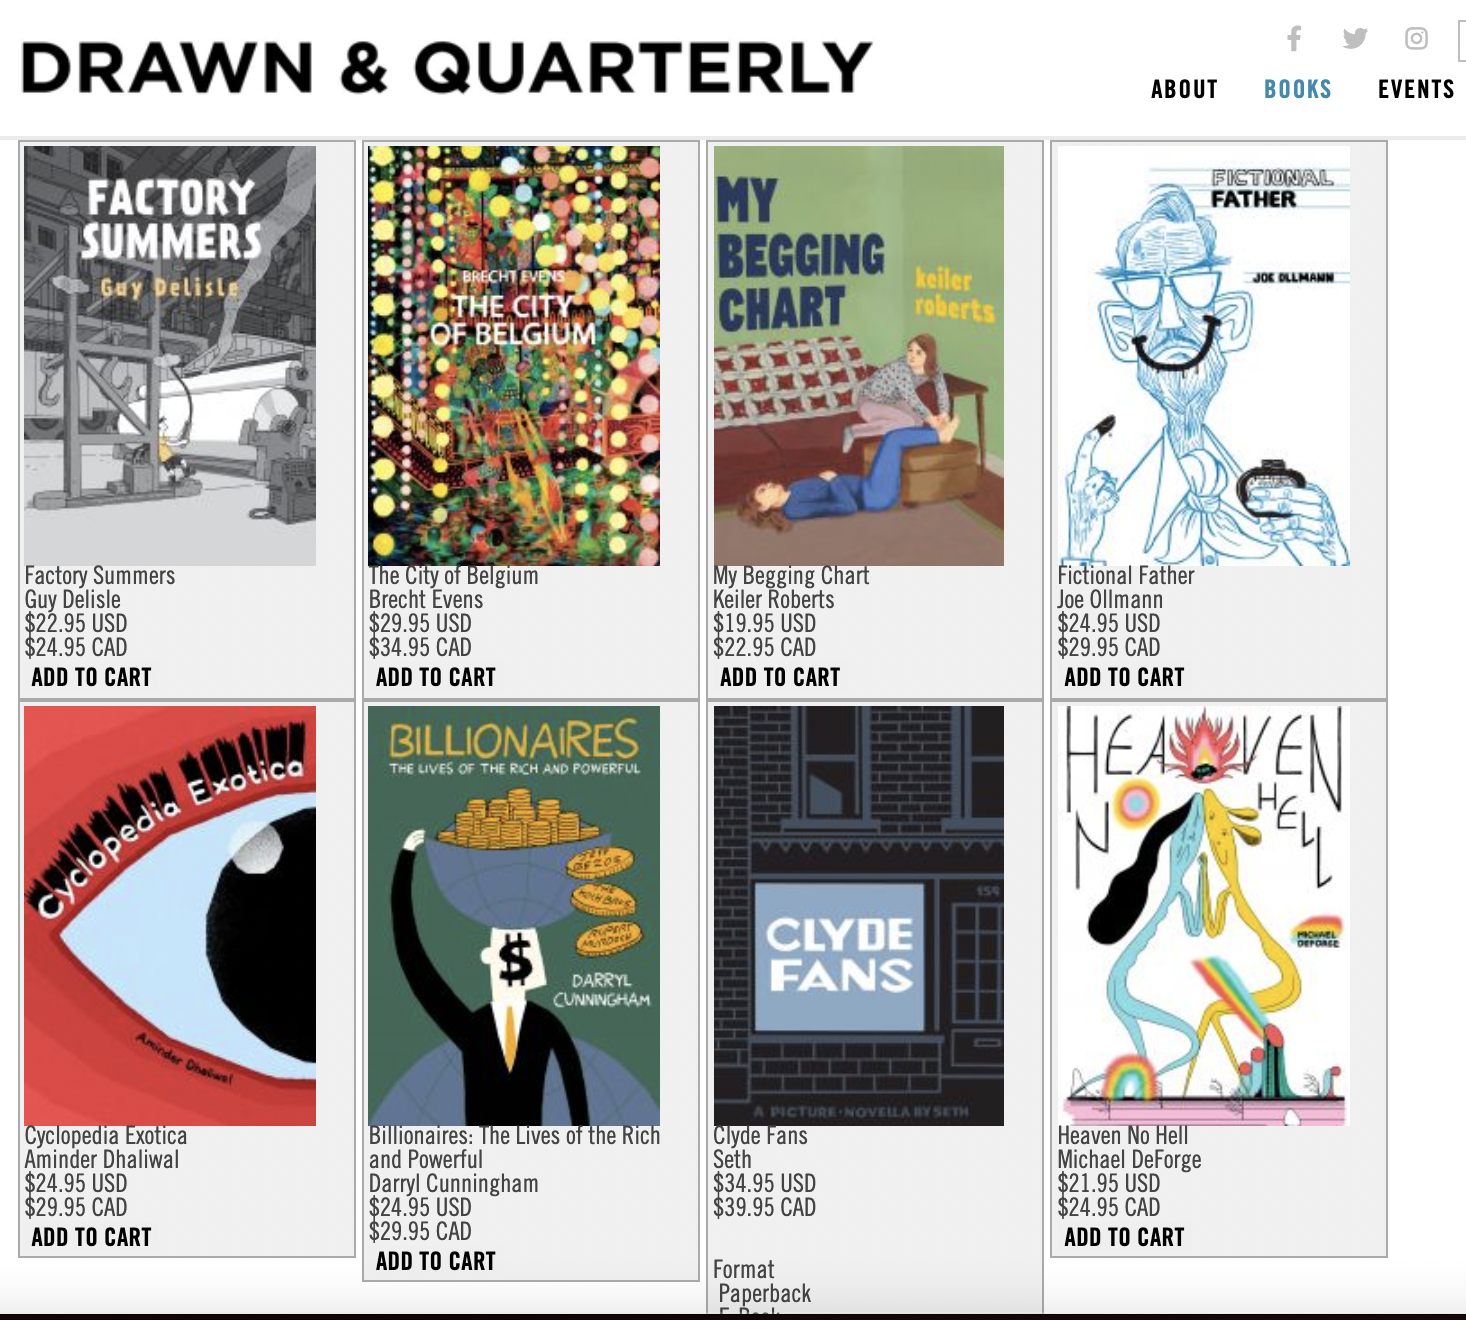 Drawn and Quarterly Books Product Shopping Page